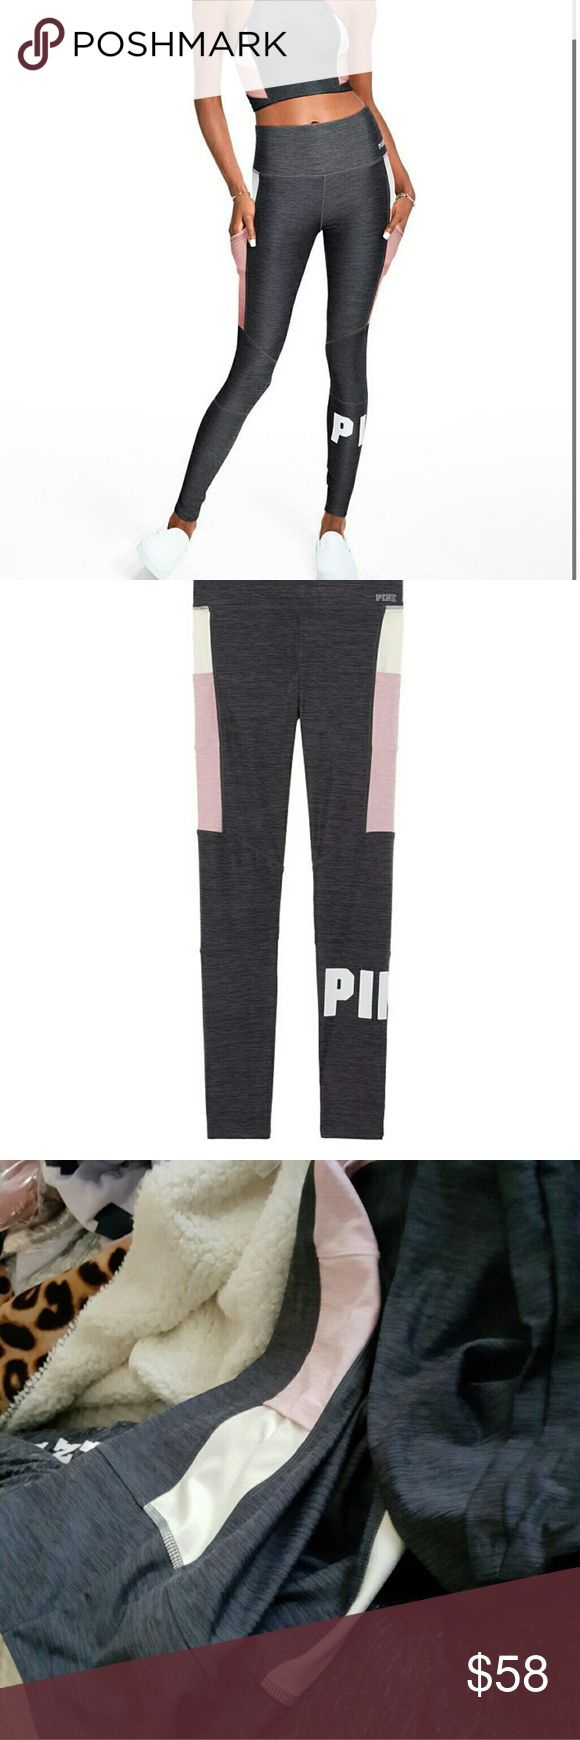 VS PINK NWT M HIGH WAIST POCKET ULTIMATE LEGGING Brand new in package Victoria's Secret PINK  Sz Medium  These are the absolutely softest leggings I have ever felt, softer than even my lularo  PINK frosting, vanilla creme colors on gray marled base Black graphics  High waist  POCKETS  Tight leggings pants  Athletics running walk shopping hiking biking yoga GYM ready, or just strutting your stuff,  I love offers, but please be respectful and no lowballing THANKS #vsbombshellbaby…